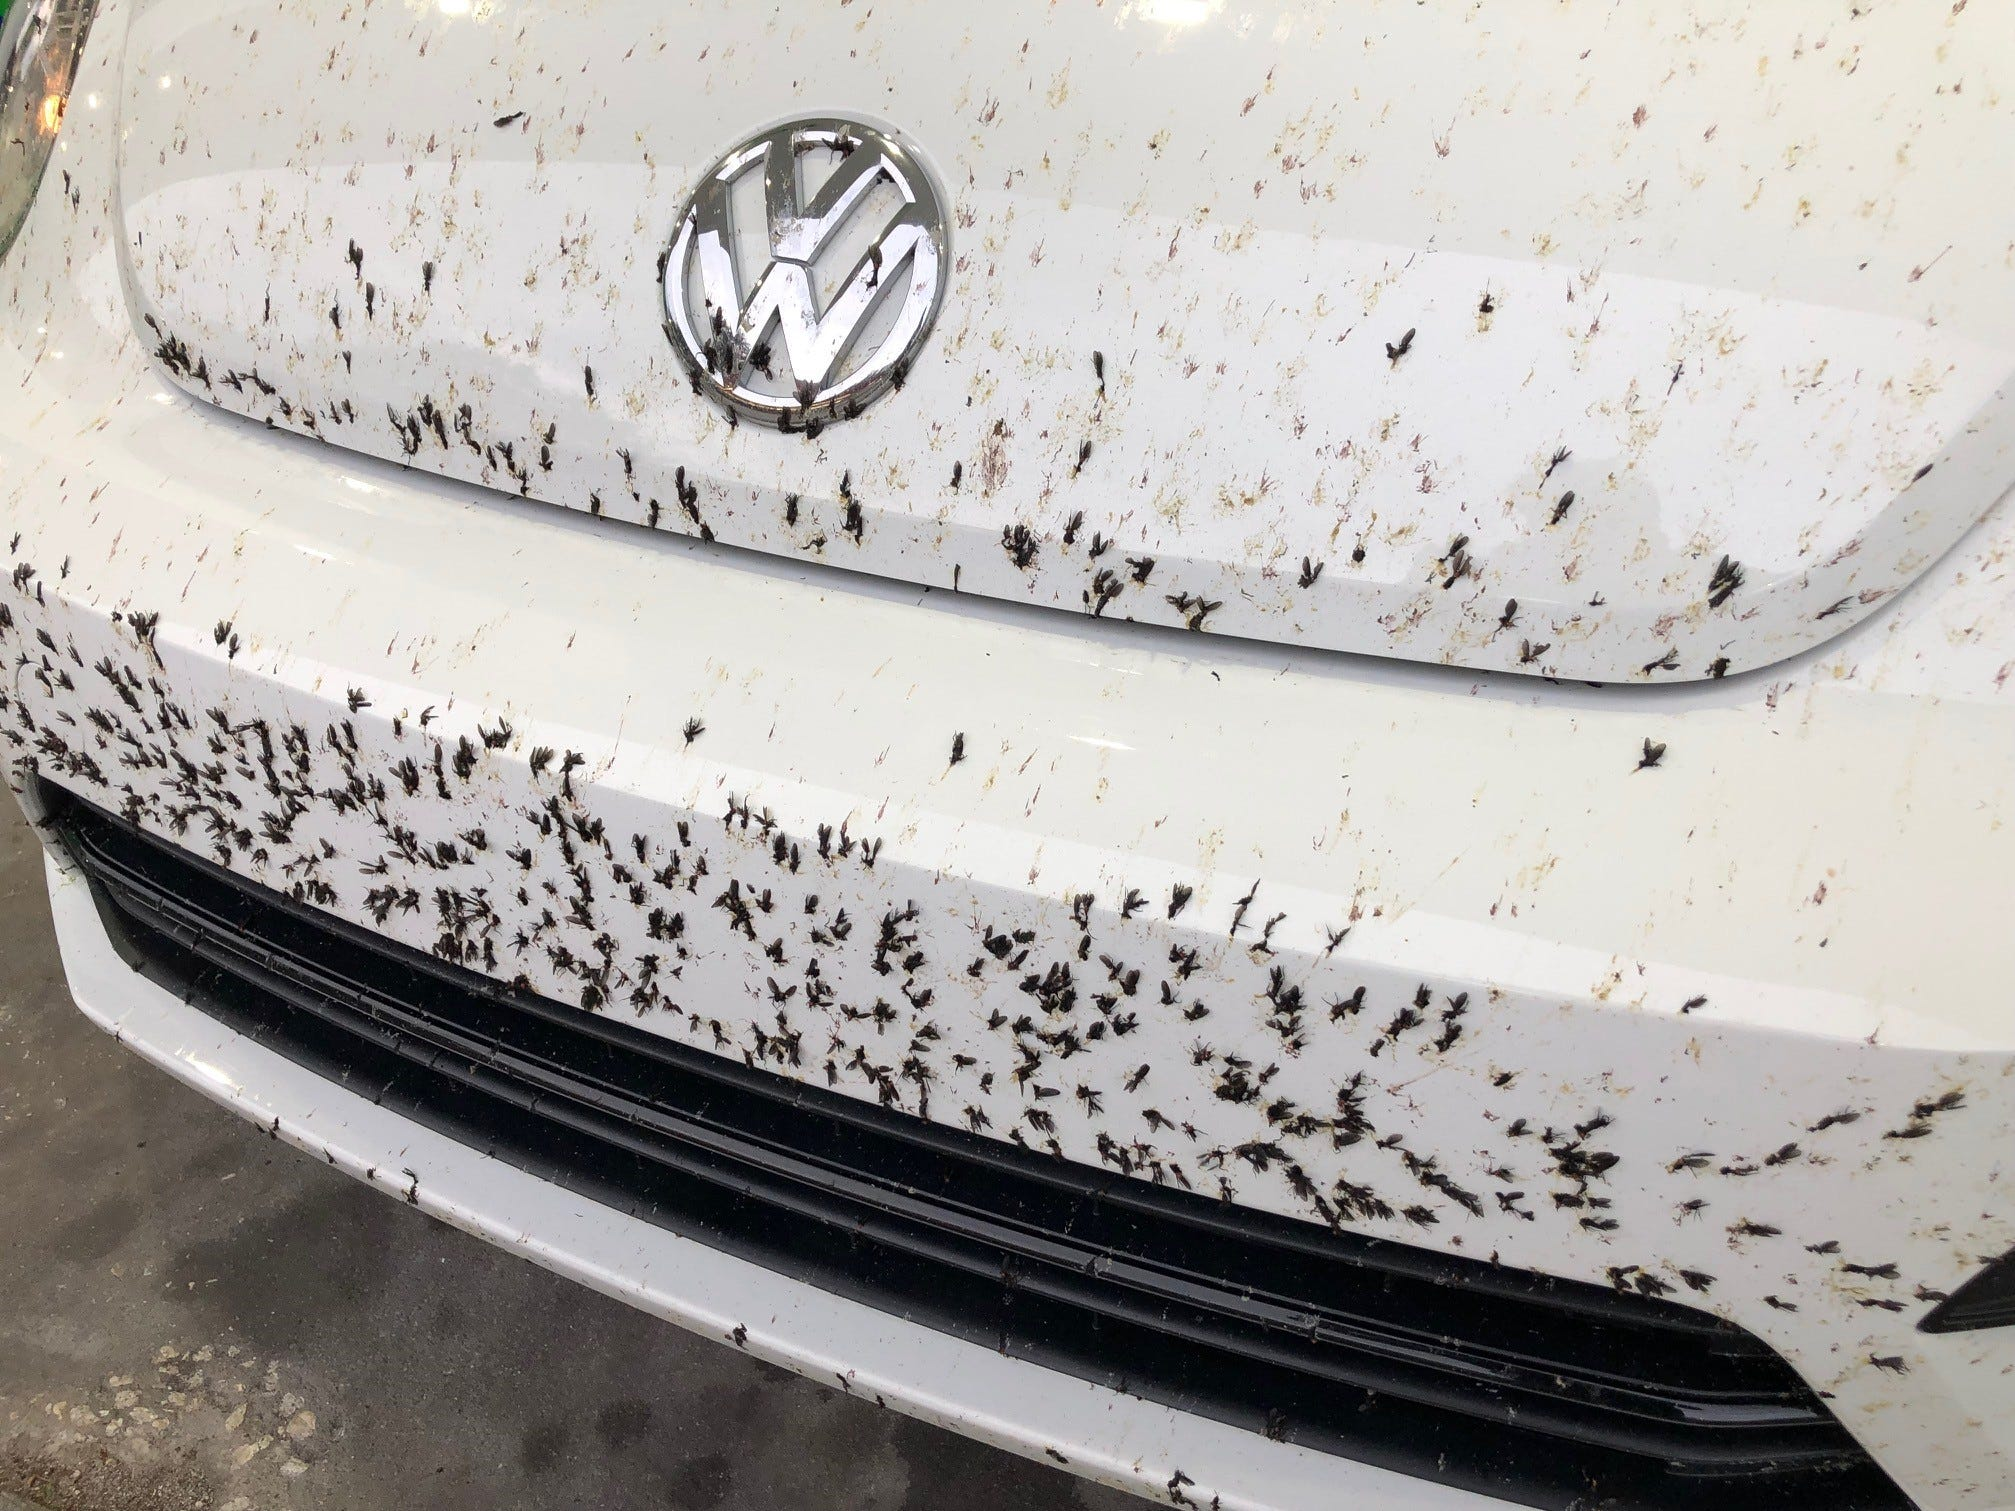 Lovebugs continue to make their presence felt, as shown on this rental car May 10, 2019.